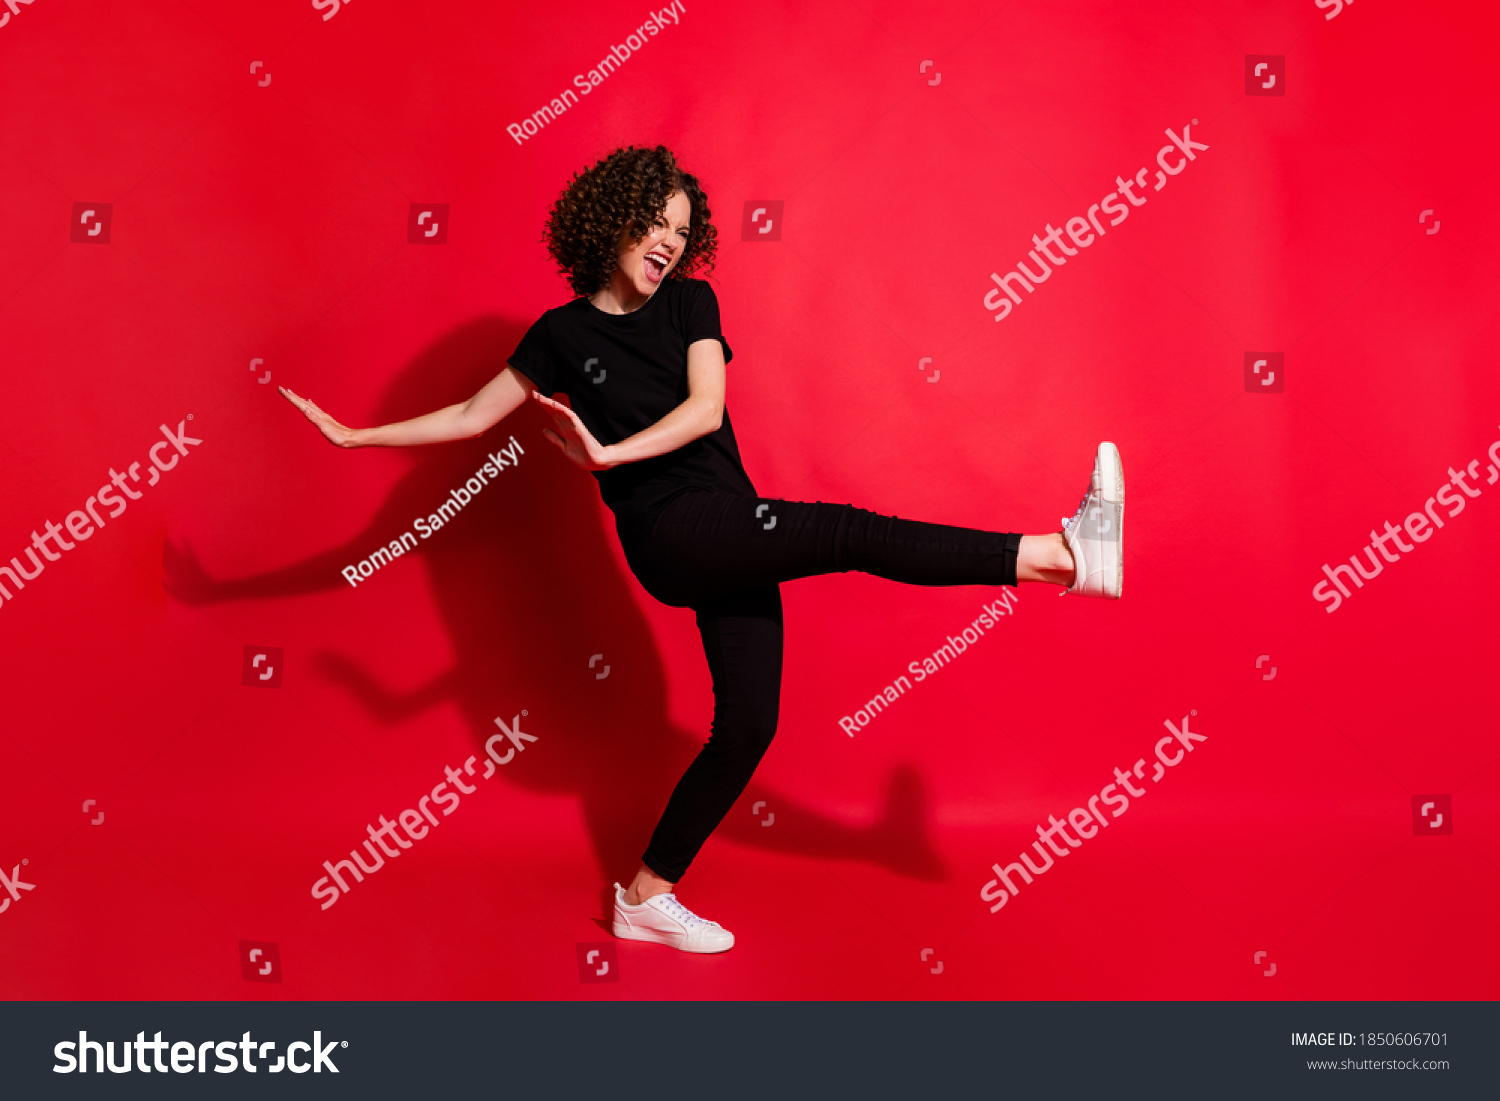 Photo portrait full body view of girl kicking raising leg dancing isolated on vivid red colored background #1850606701